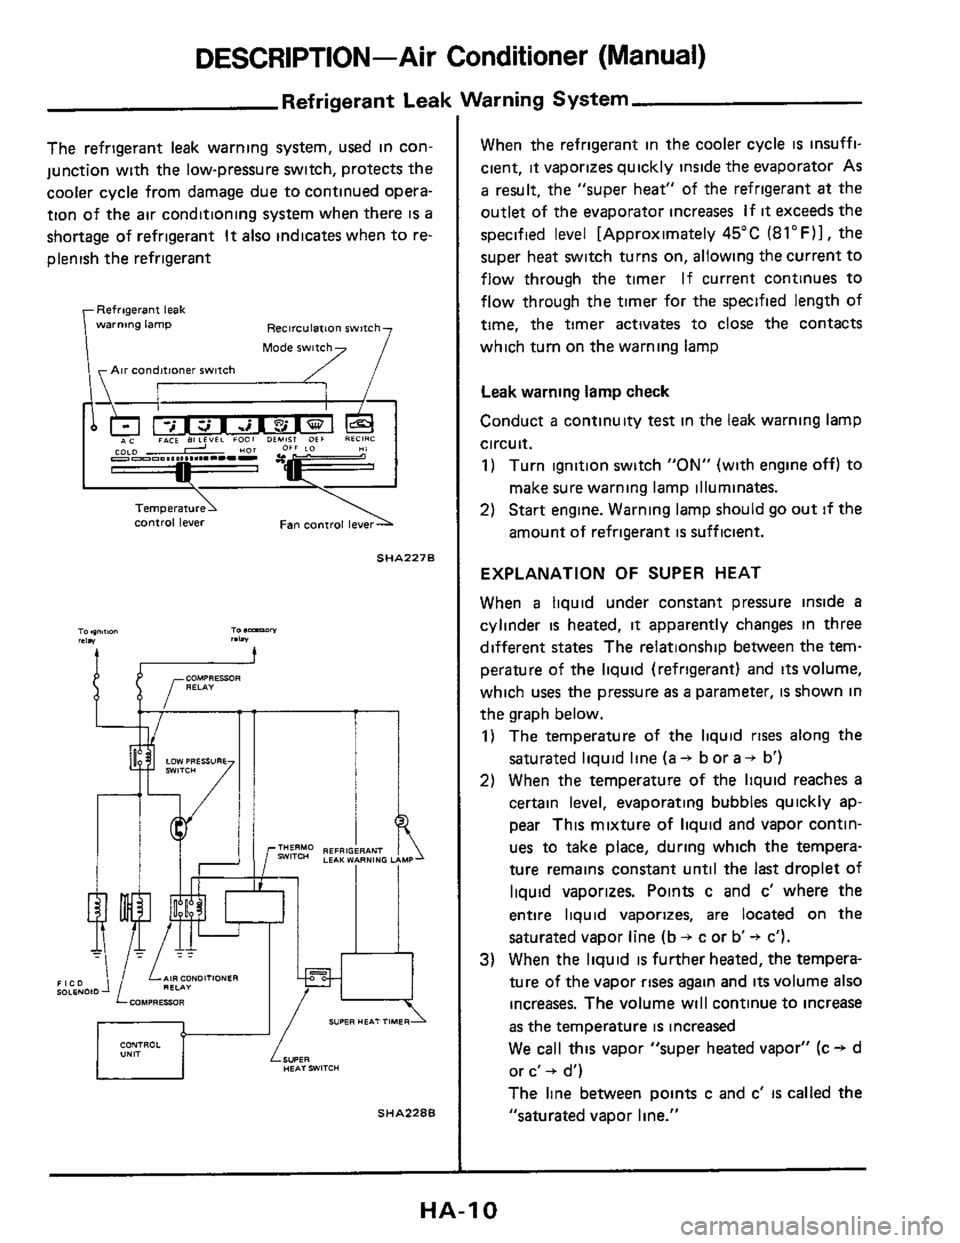 NISSAN 300ZX 1984 Z31 Heather And Air Conditioner Workshop Manual, Page 10